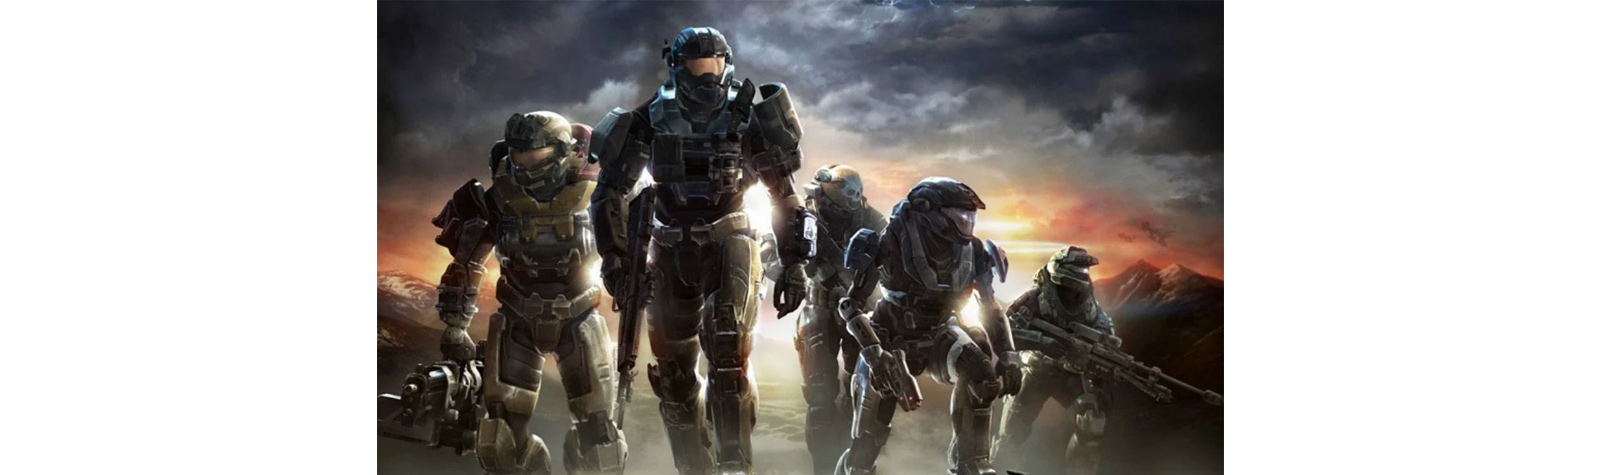 Halo: Reach MCC Release Information